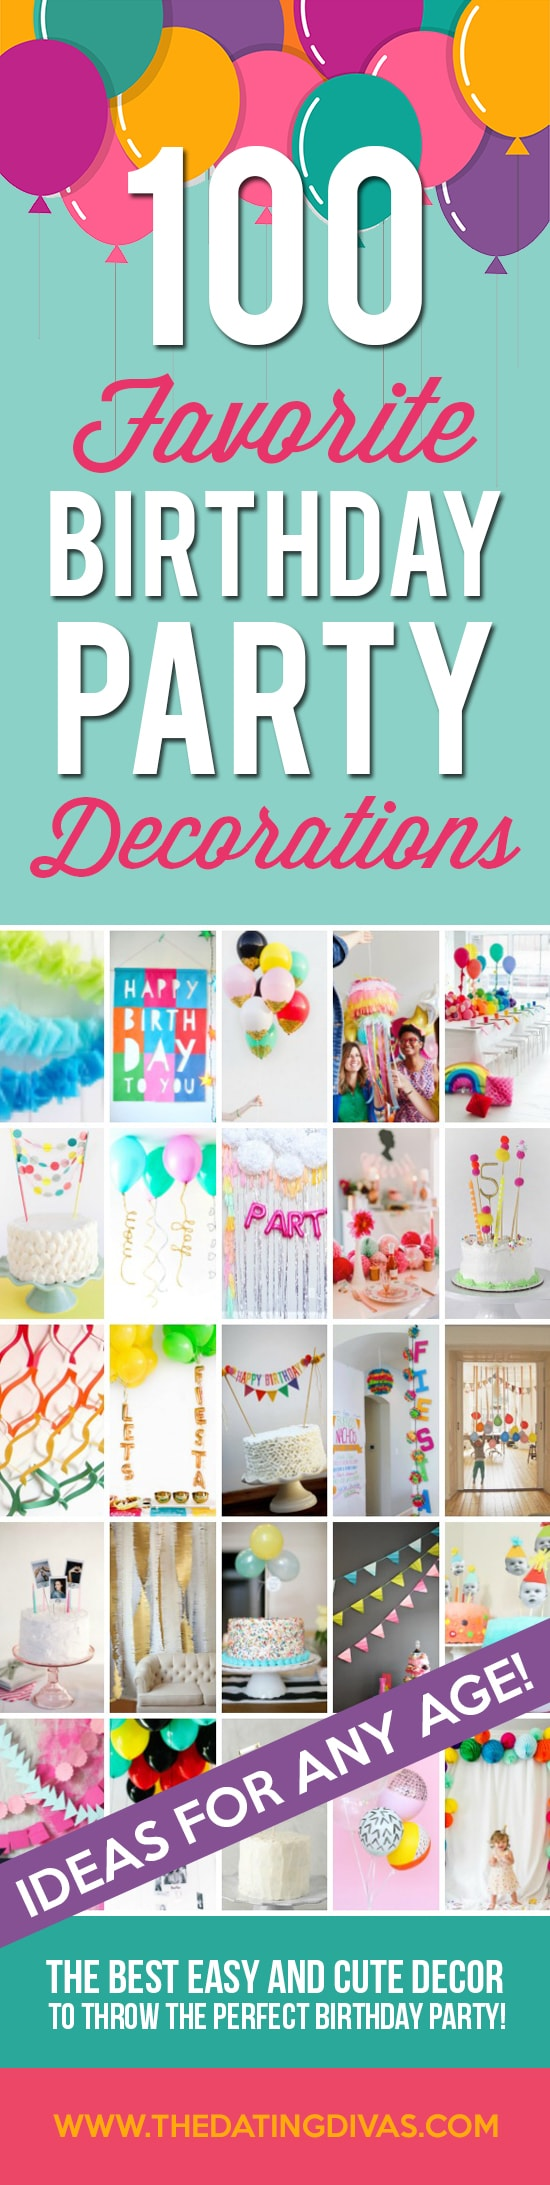 100 Birthday Party Decoration Ideas The Dating Divas